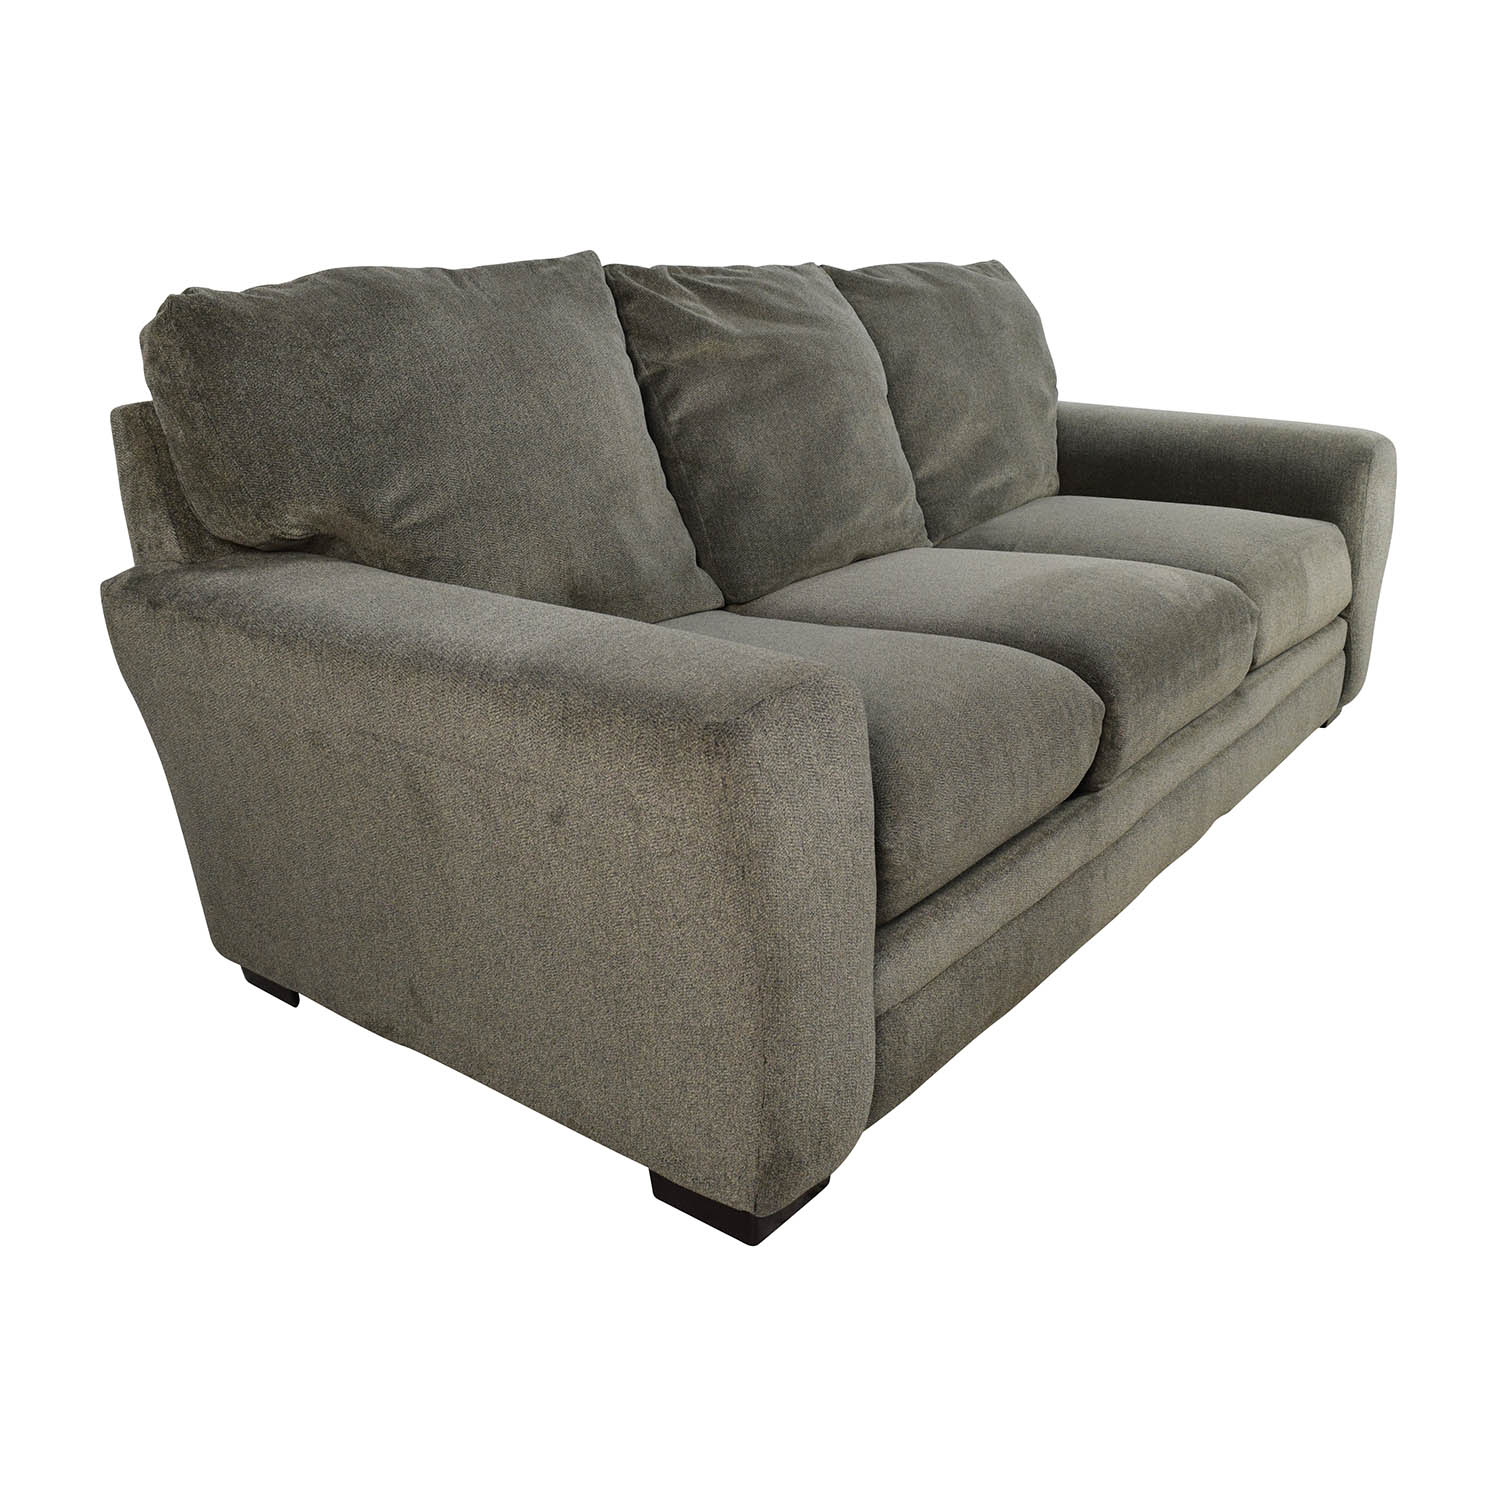 44% OFF Bob s Furniture Bob s Furniture Gray Jackson Sofa Sofas